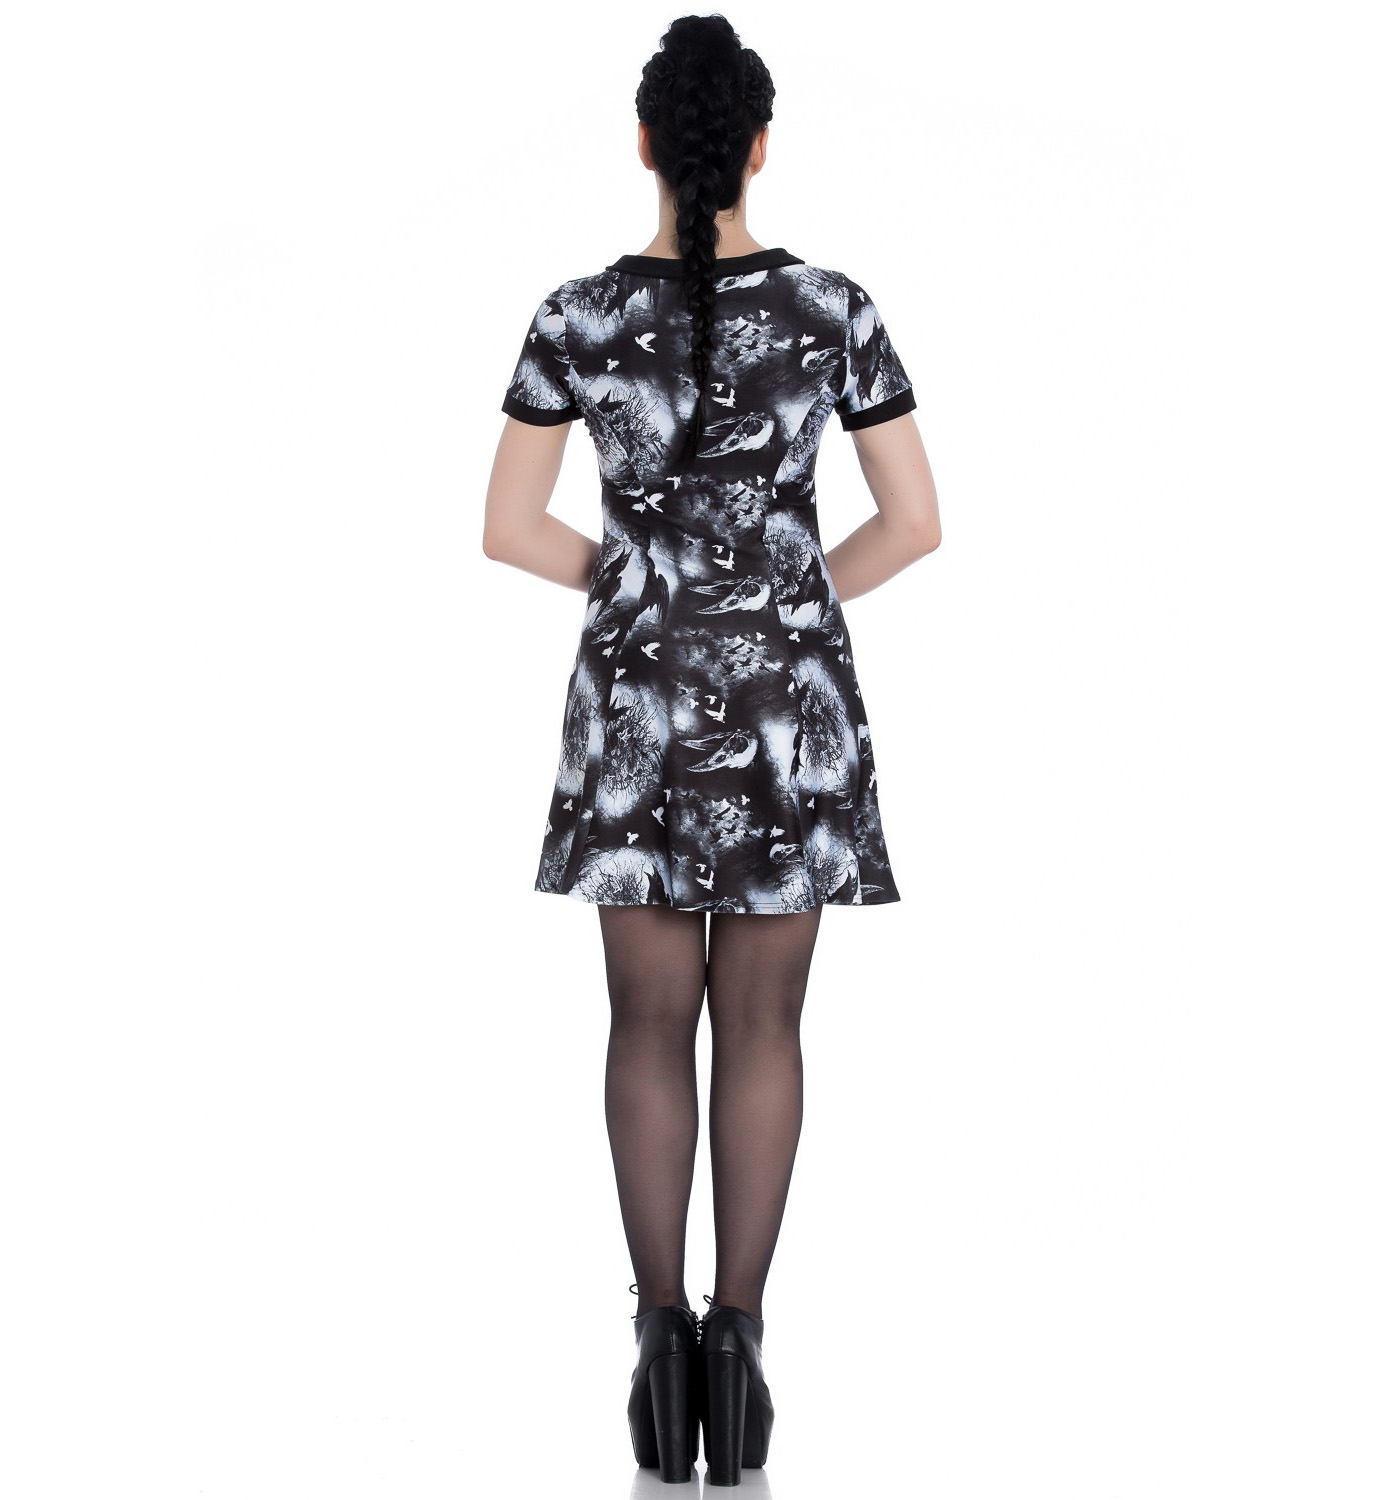 Hell-Bunny-Alternative-Goth-Punk-Black-Mini-Dress-CROWS-NEST-Witch-All-Sizes thumbnail 11